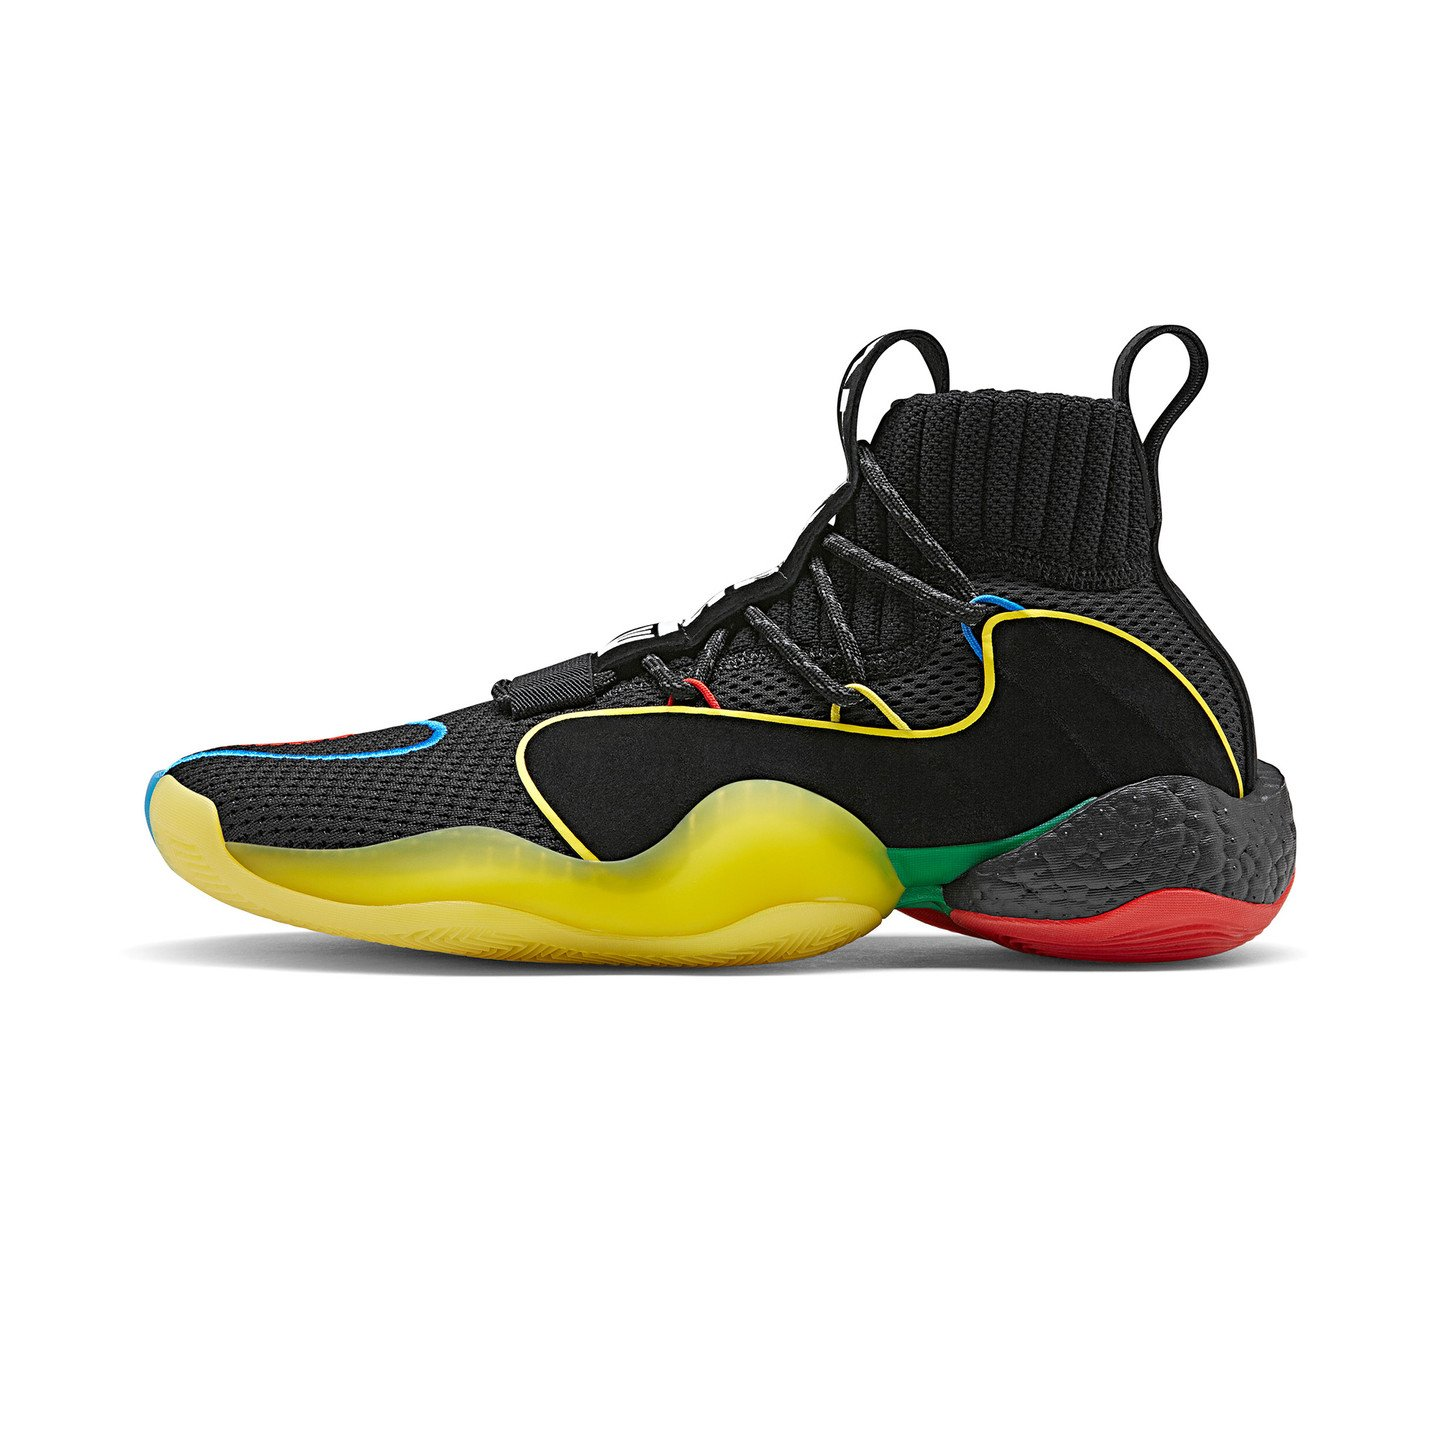 Adidas Pharrell Williams Crazy BYW LVL 'Gratitude + Empathy' Core Black / Green / Red G27805